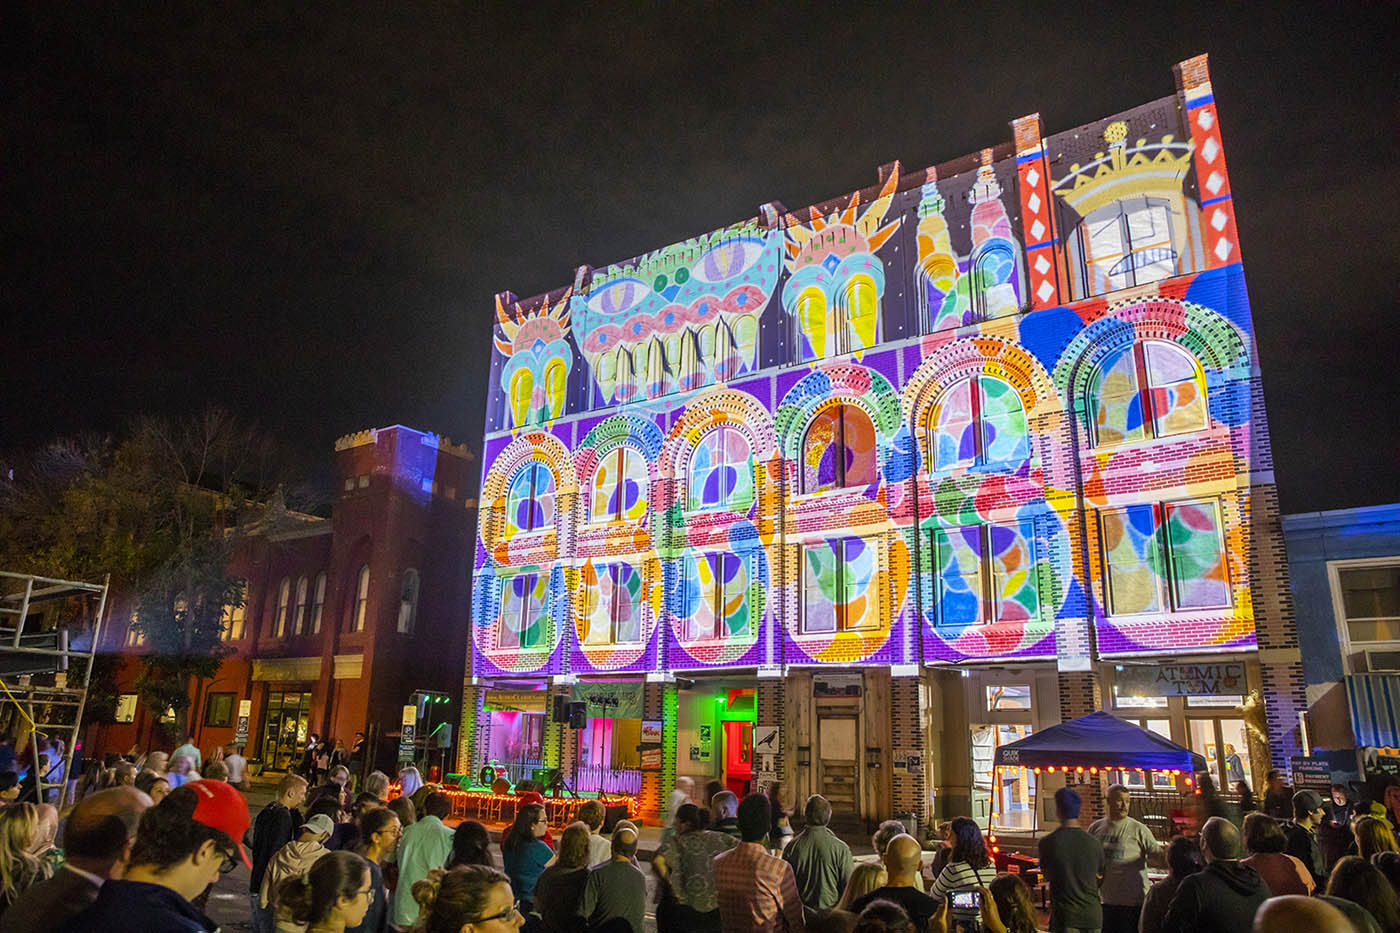 Tens of thousands of attendees flock to downtown Binghamton for the LUMA Projection Arts Festival.